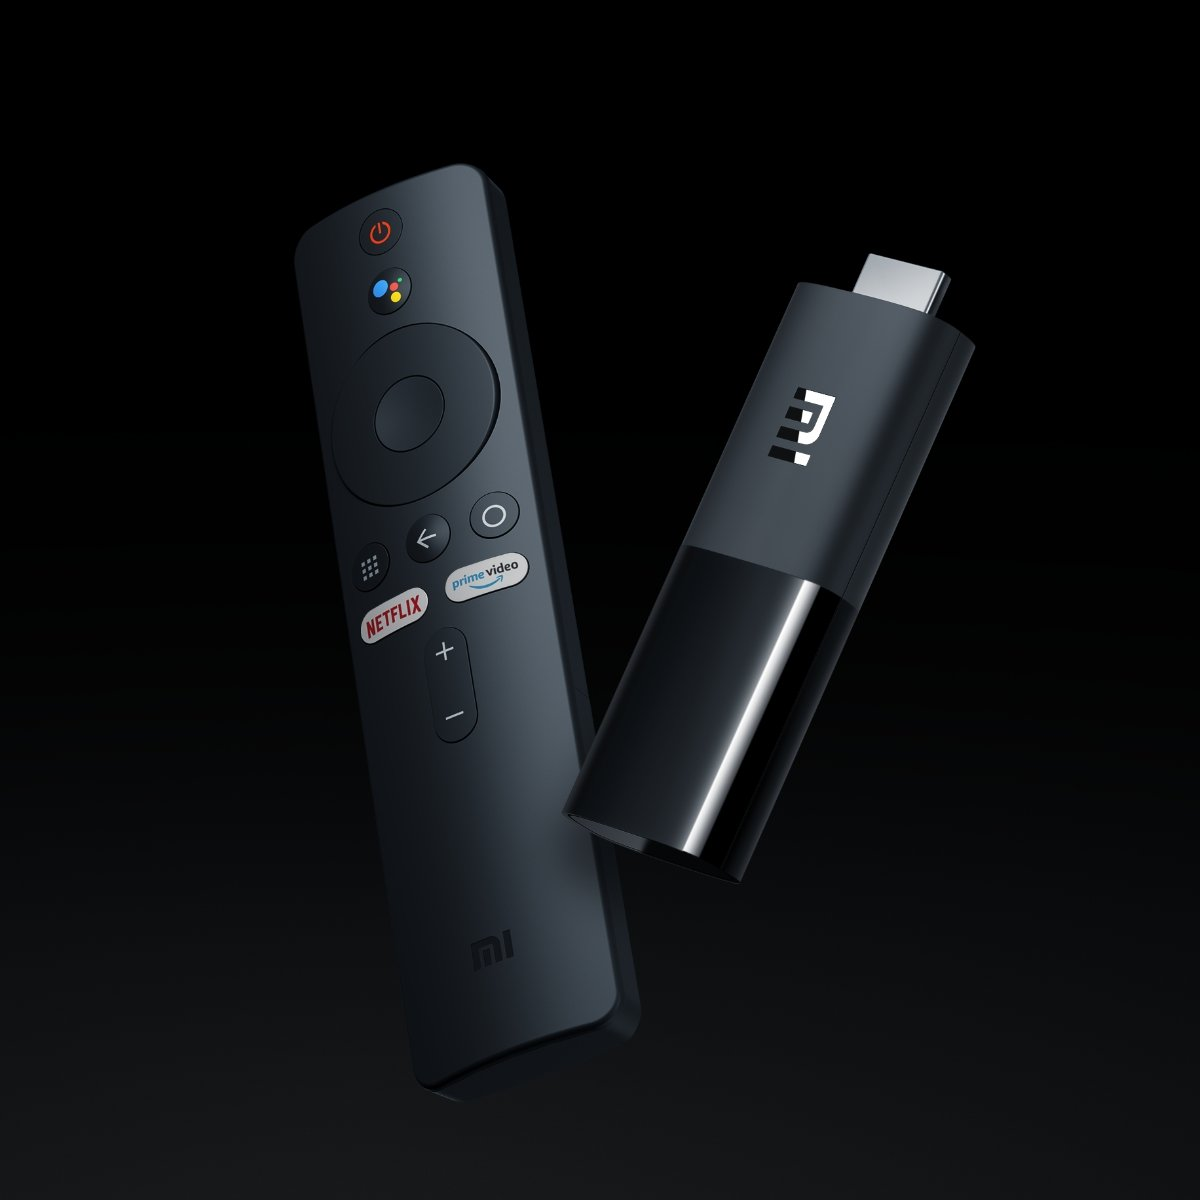 xiaomi mi fire tv stick 2